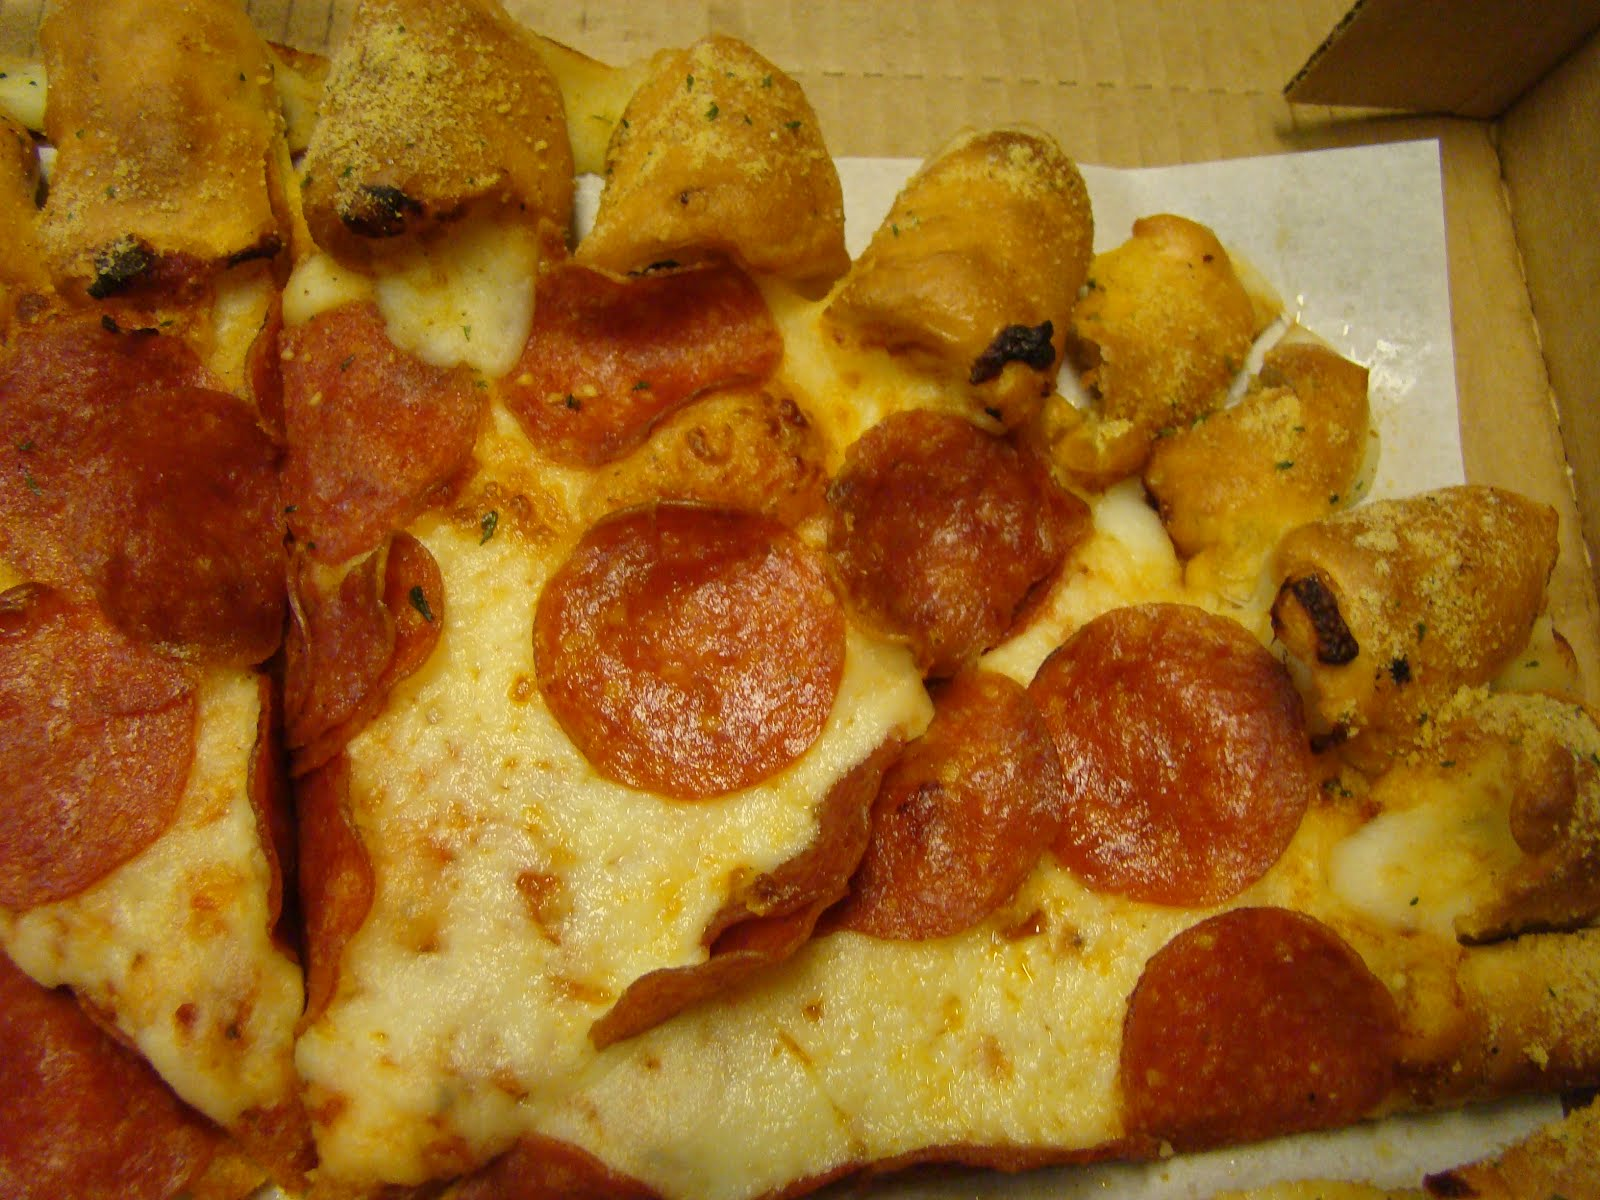 giveaway lady new cheesy bites pizza at pizza hut review giveaway the first thing that drew me to this pizza was the cheese my little sister loves cheese and she was smiling when she saw this one